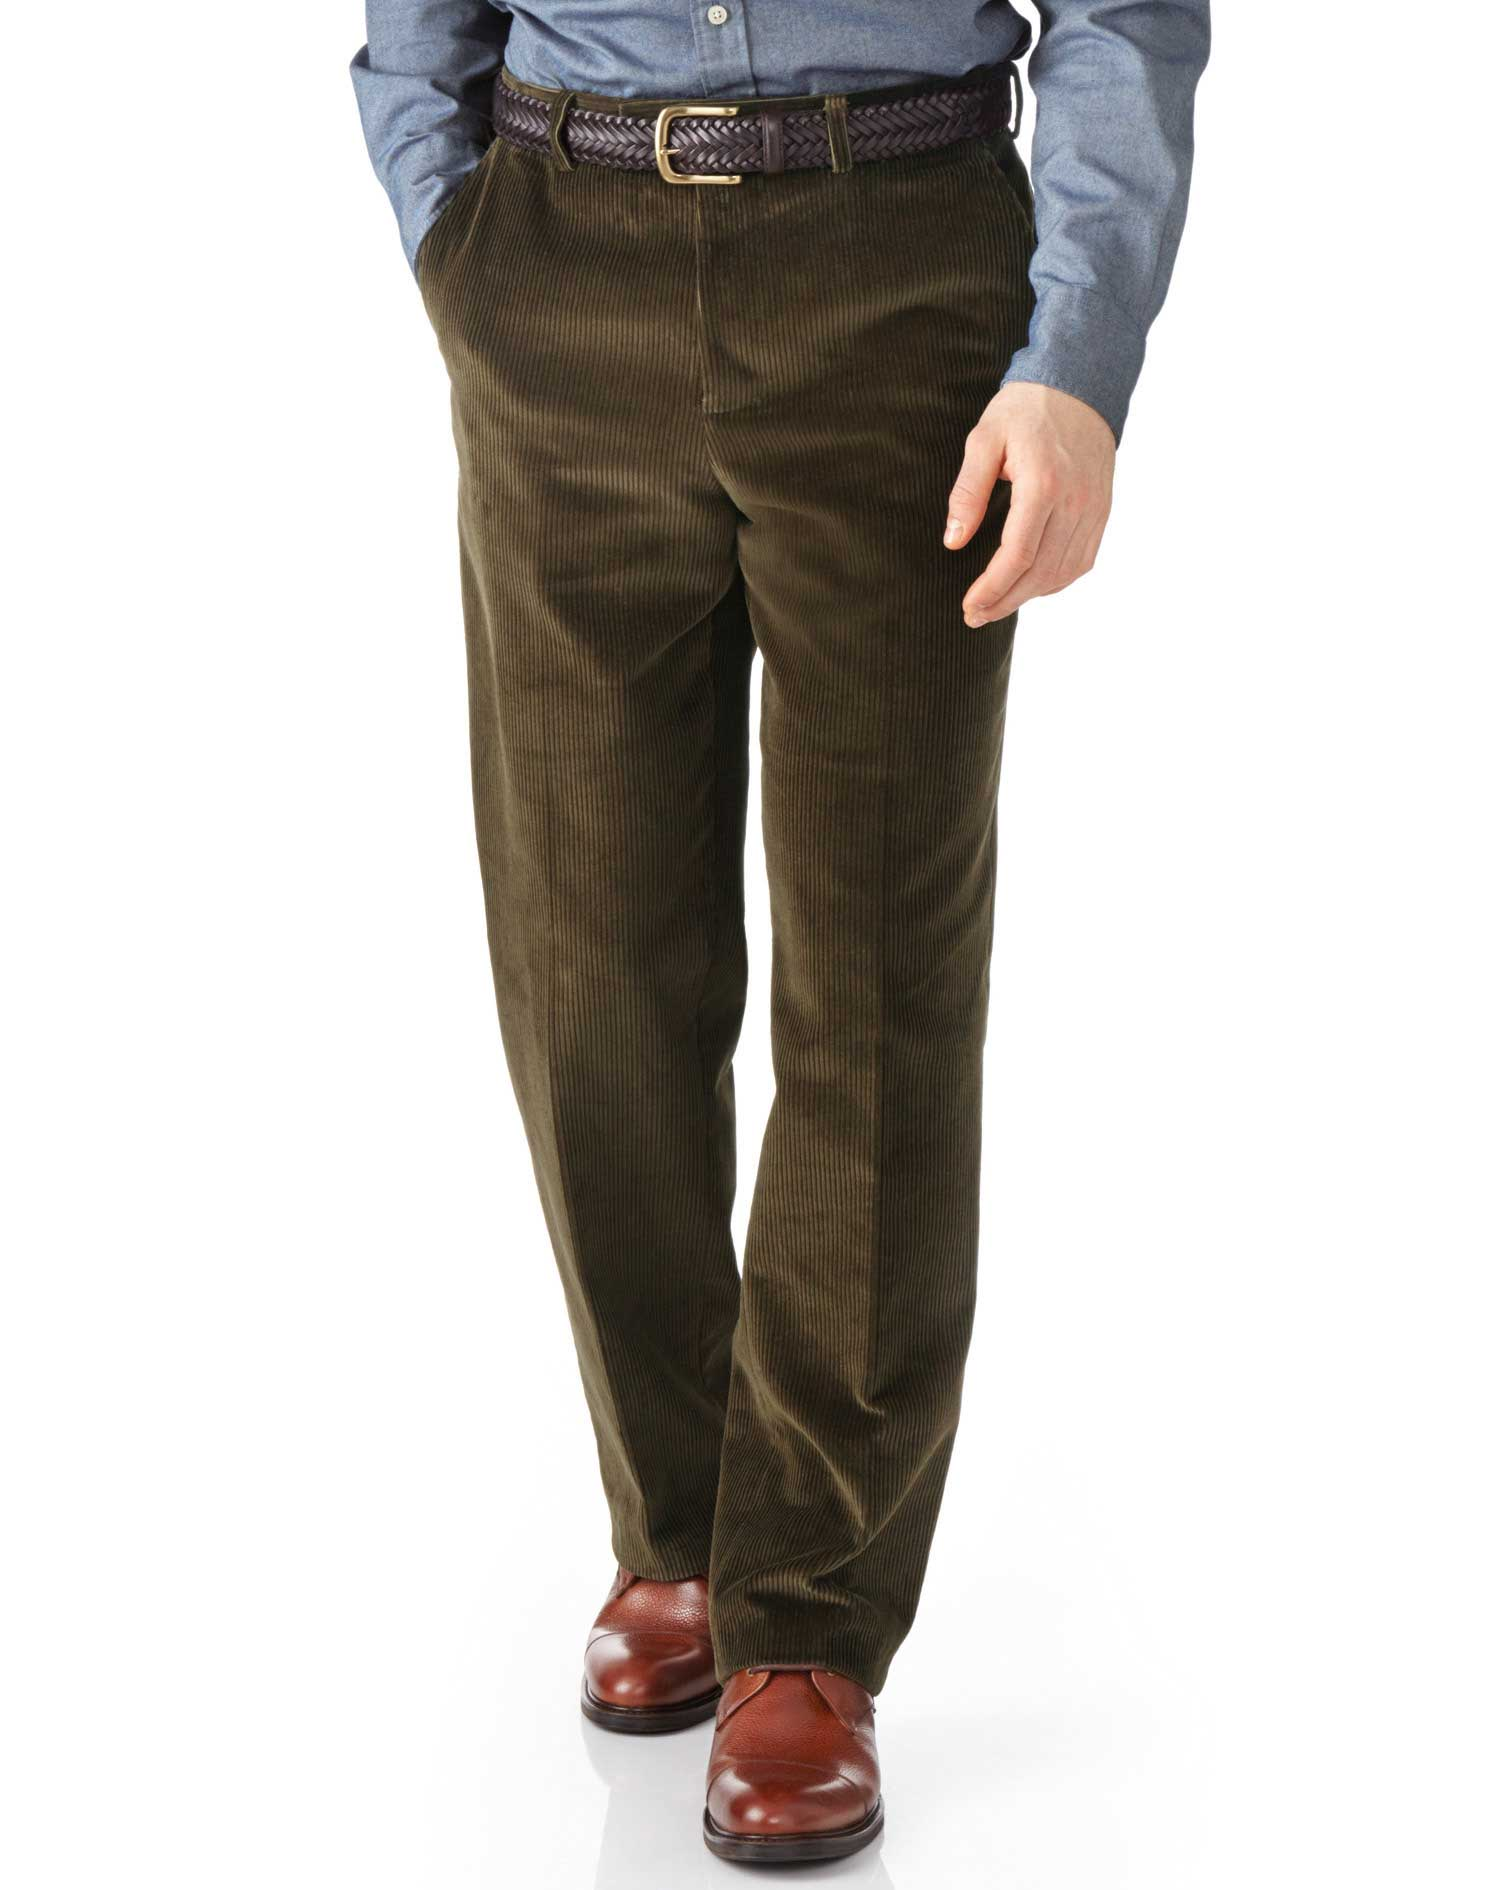 Olive Classic Fit Jumbo Cord Trousers Size W36 L34 by Charles Tyrwhitt